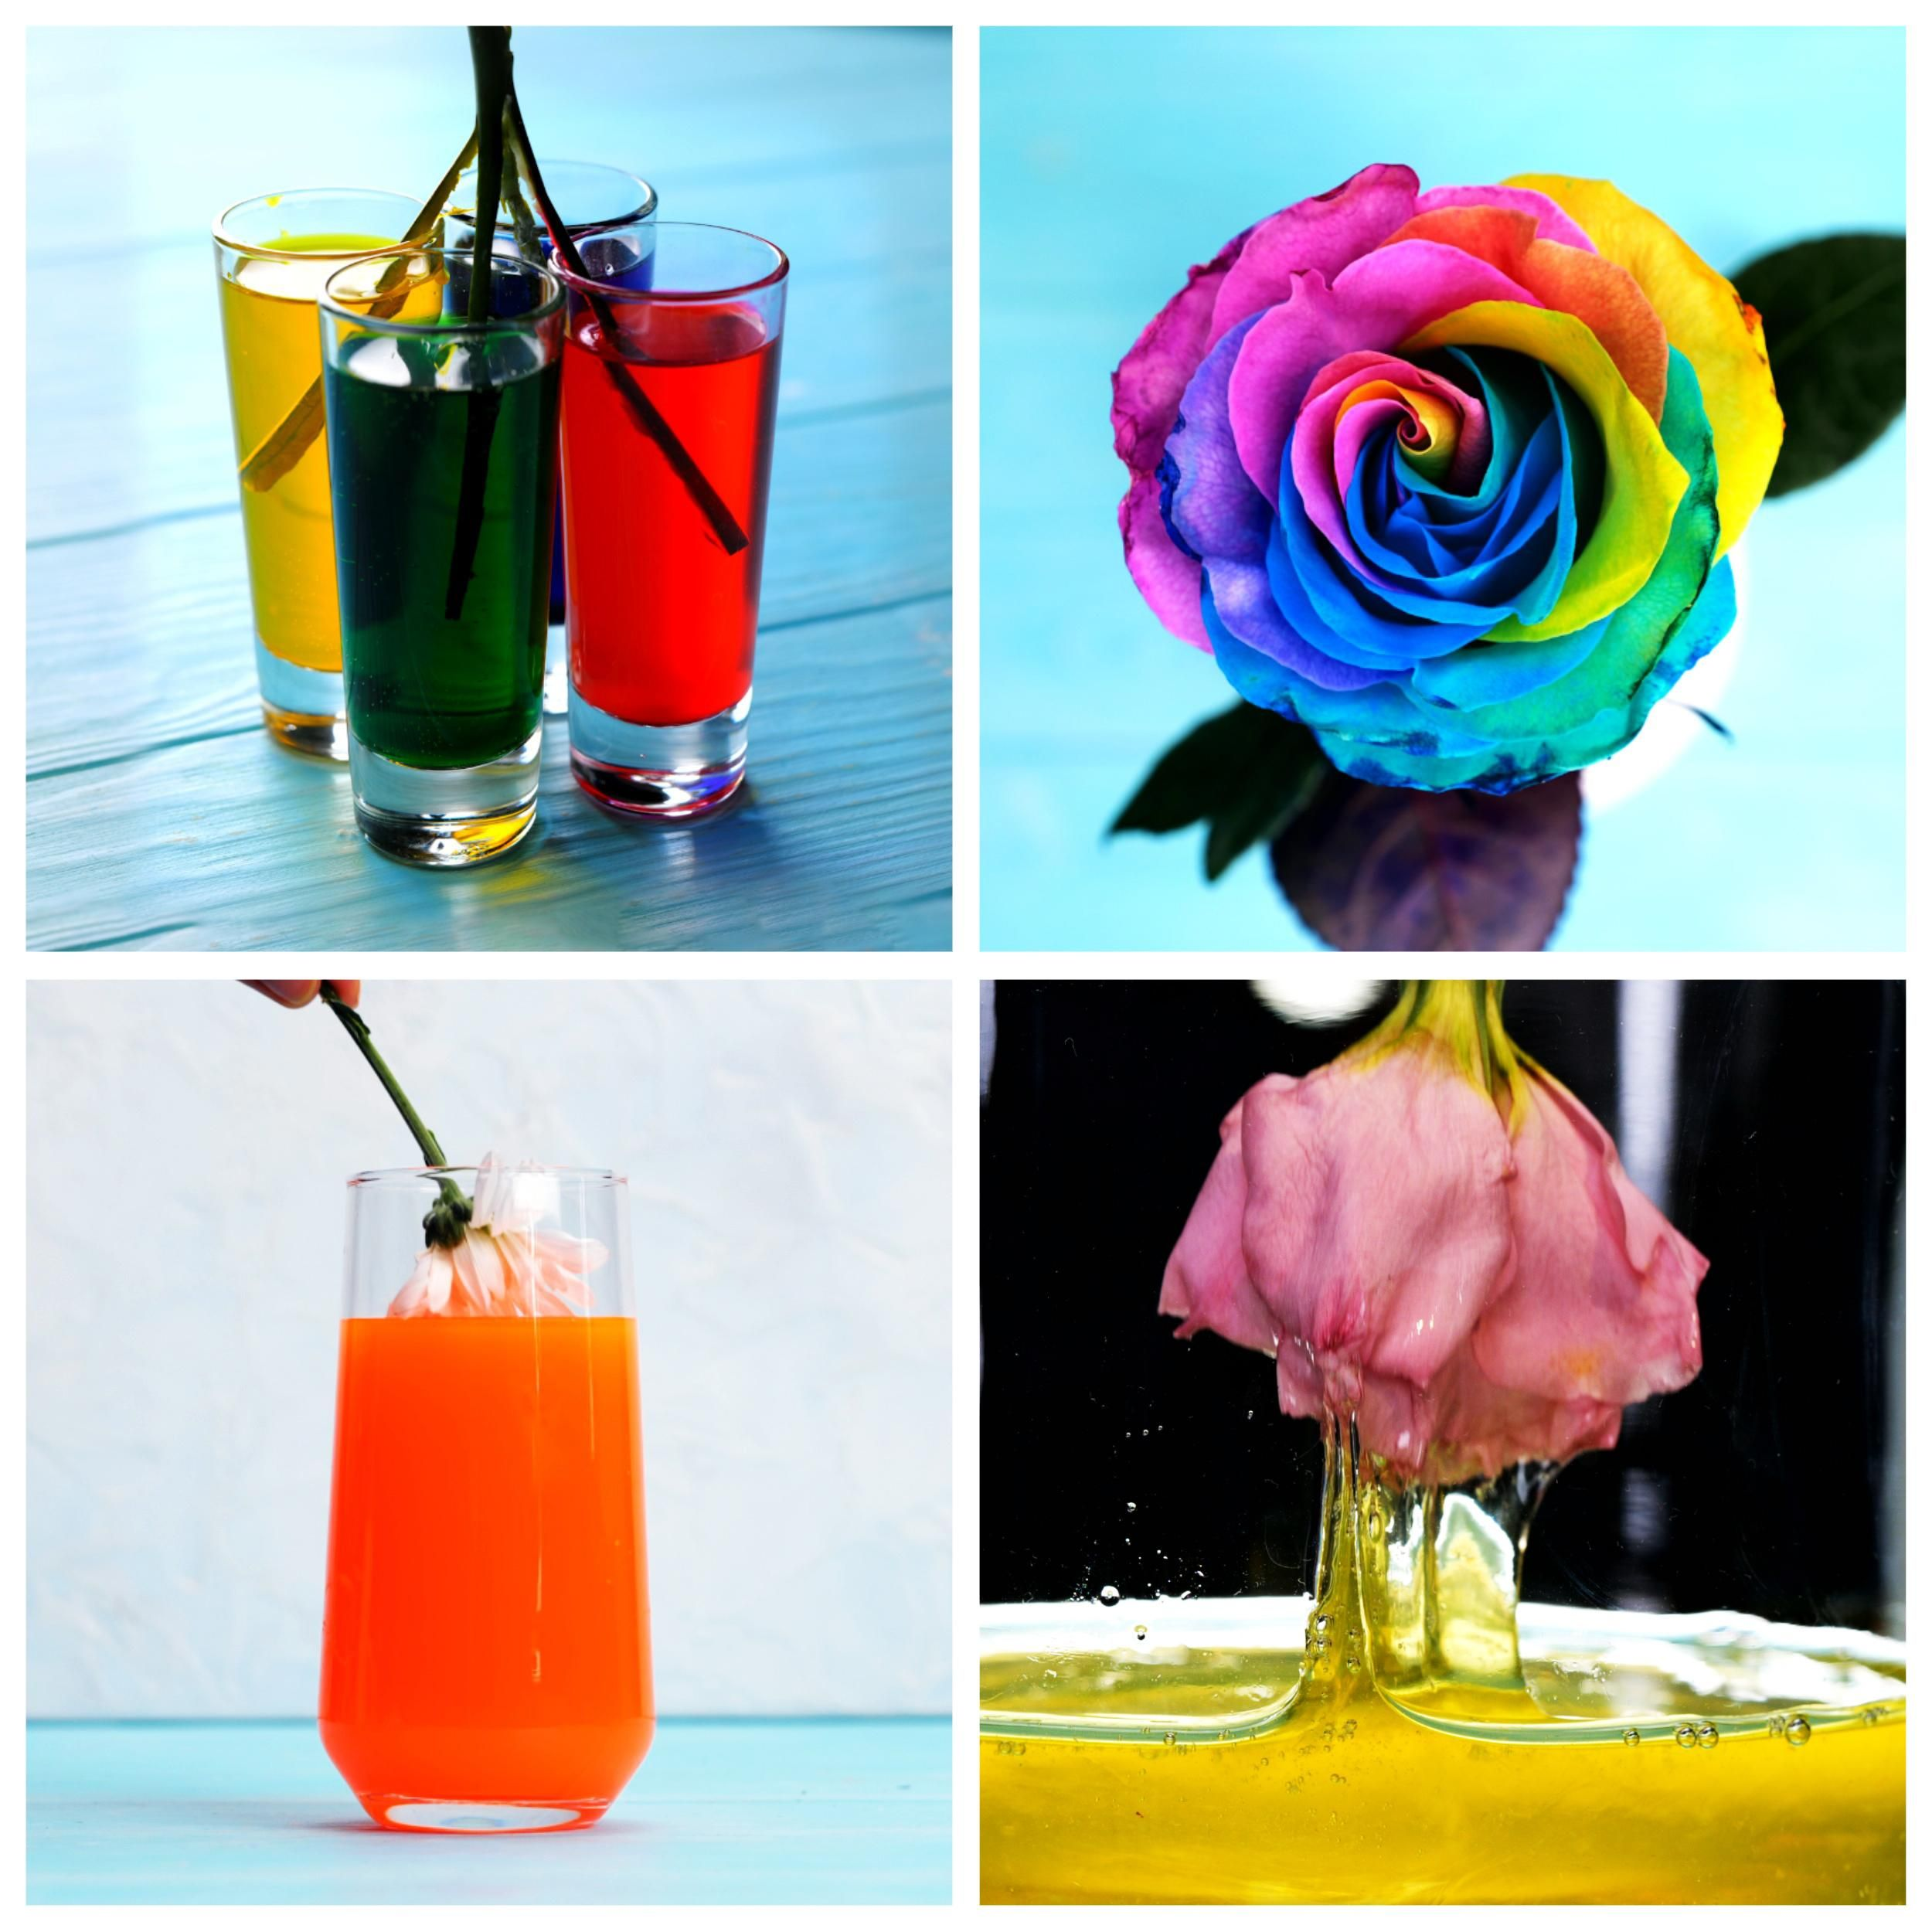 Amazing flower hacks you definitely need to know for the future